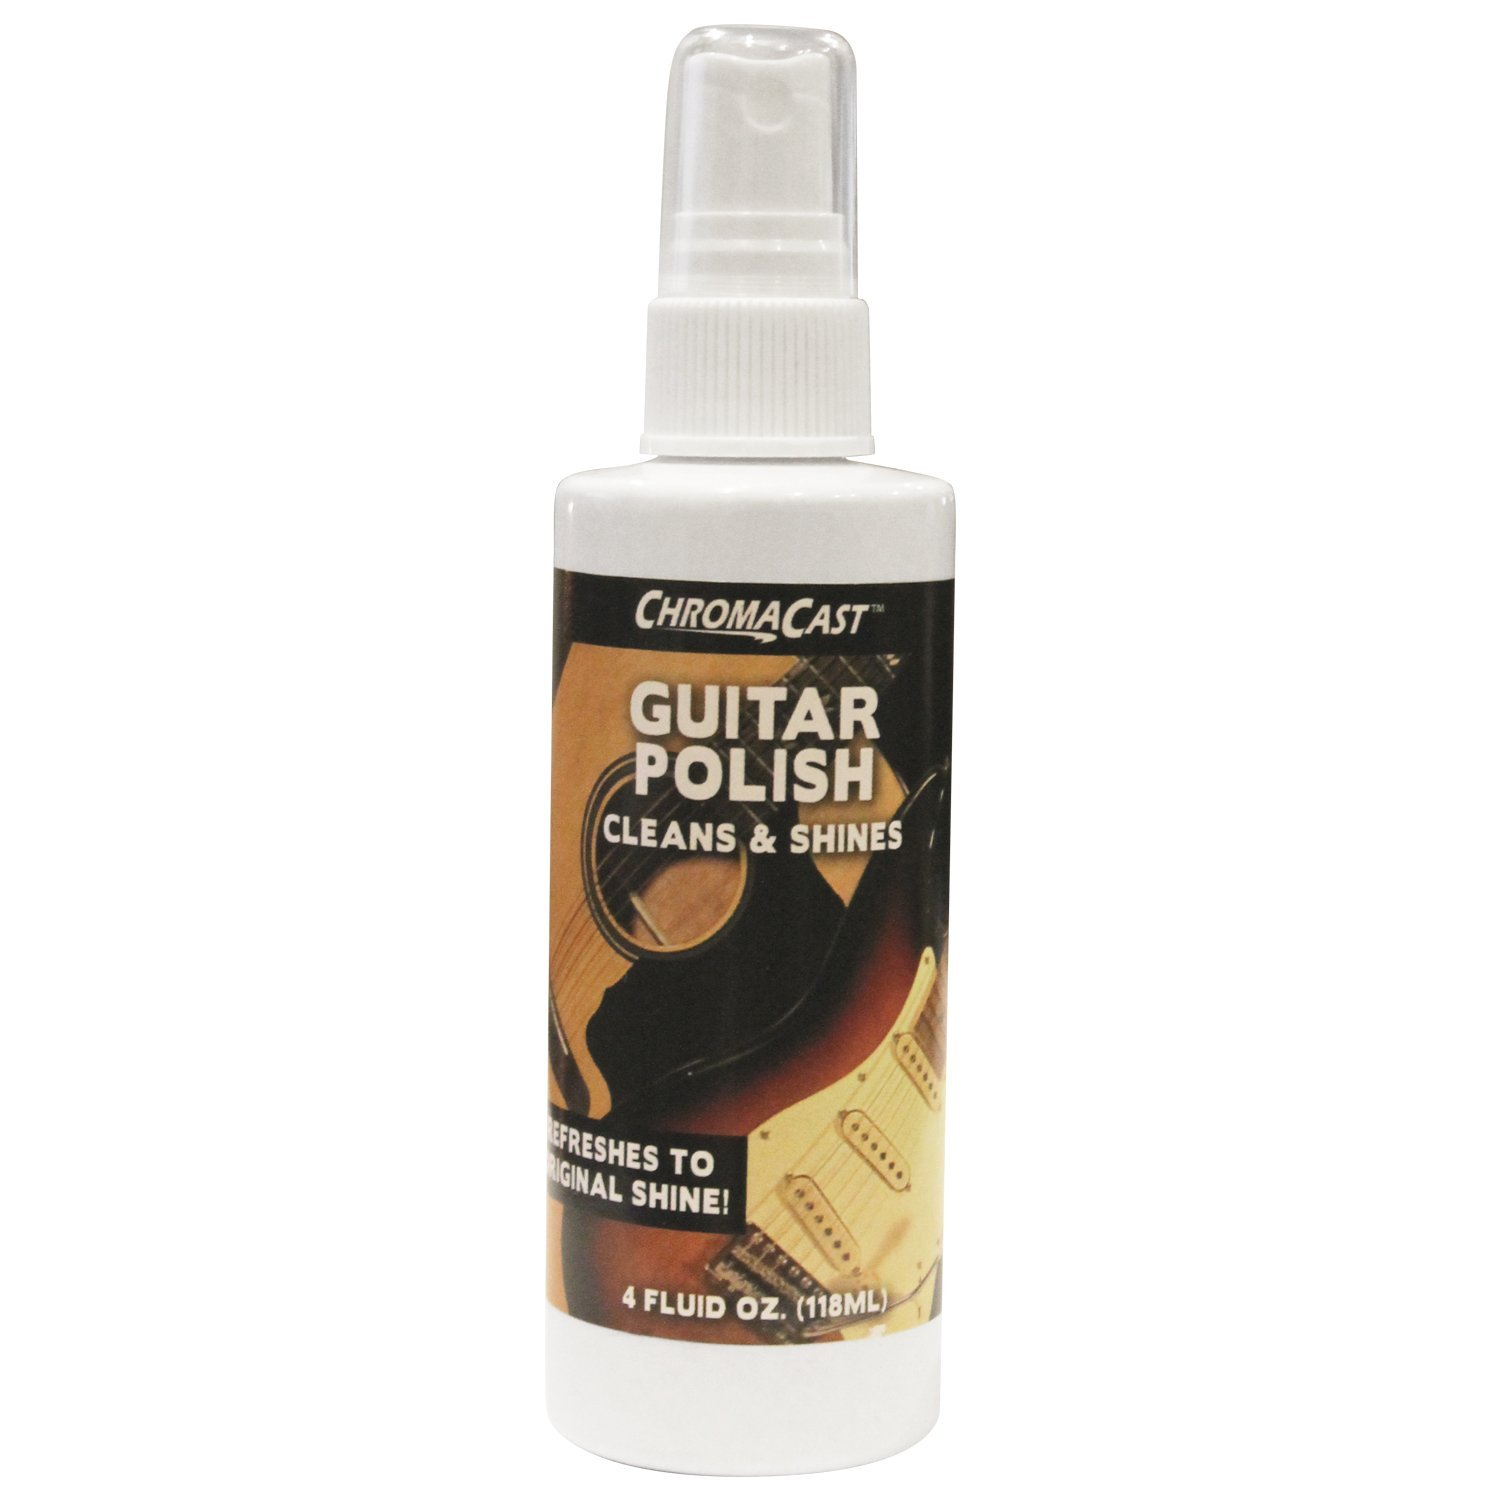 ChromaCast 4oz Guitar Polish by ChromaCast